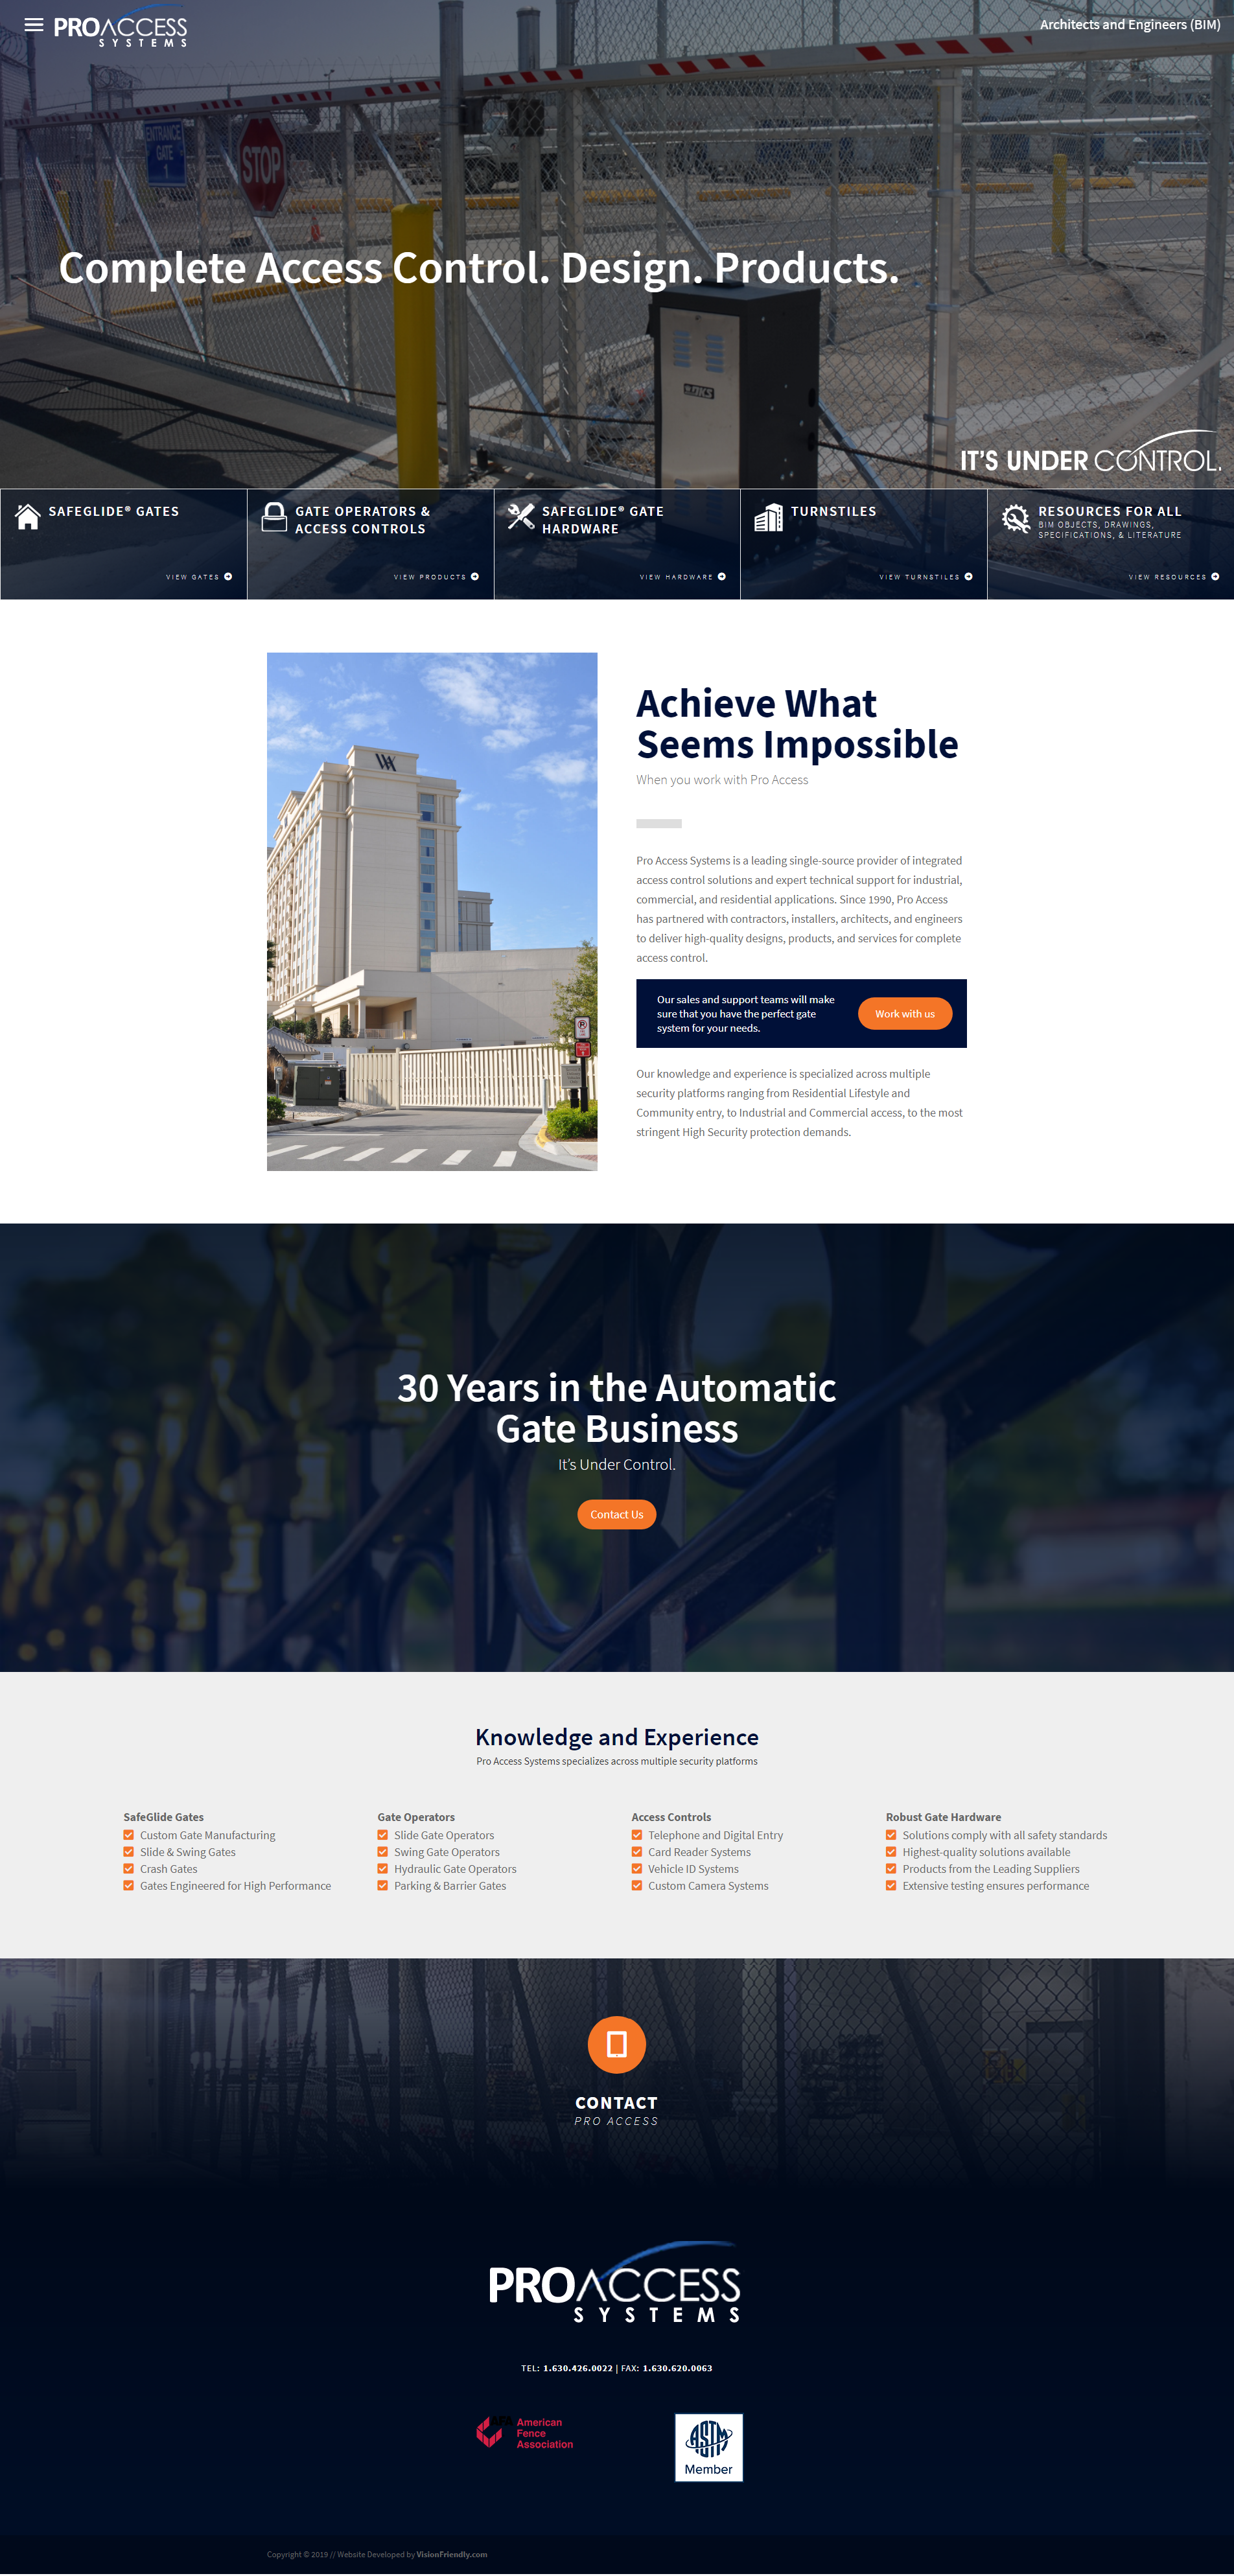 Website Design For Proaccess Systems By Visionfriendly Com Gates Industrialgates Automatedgates Indu Business Web Design Web Design Agency Automatic Gate